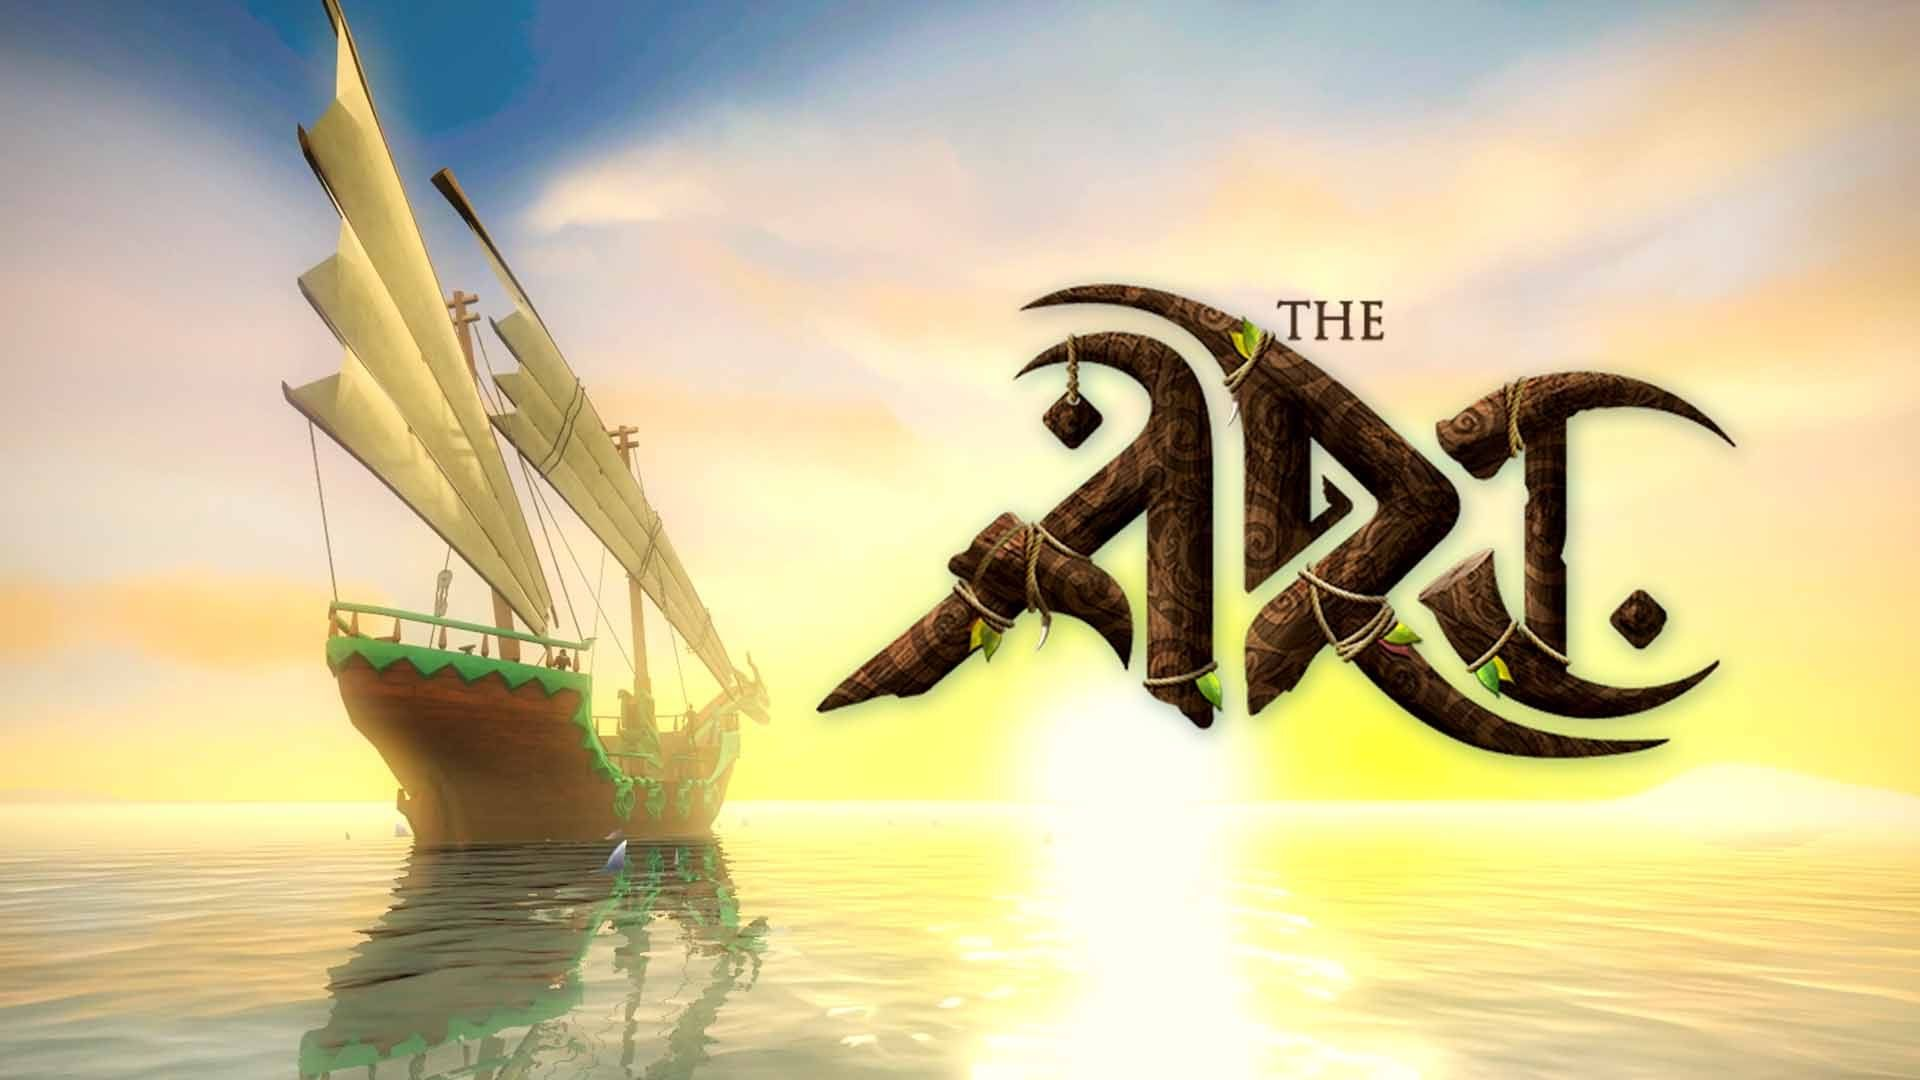 The Arc Trailer RuneScape's new expansion! The